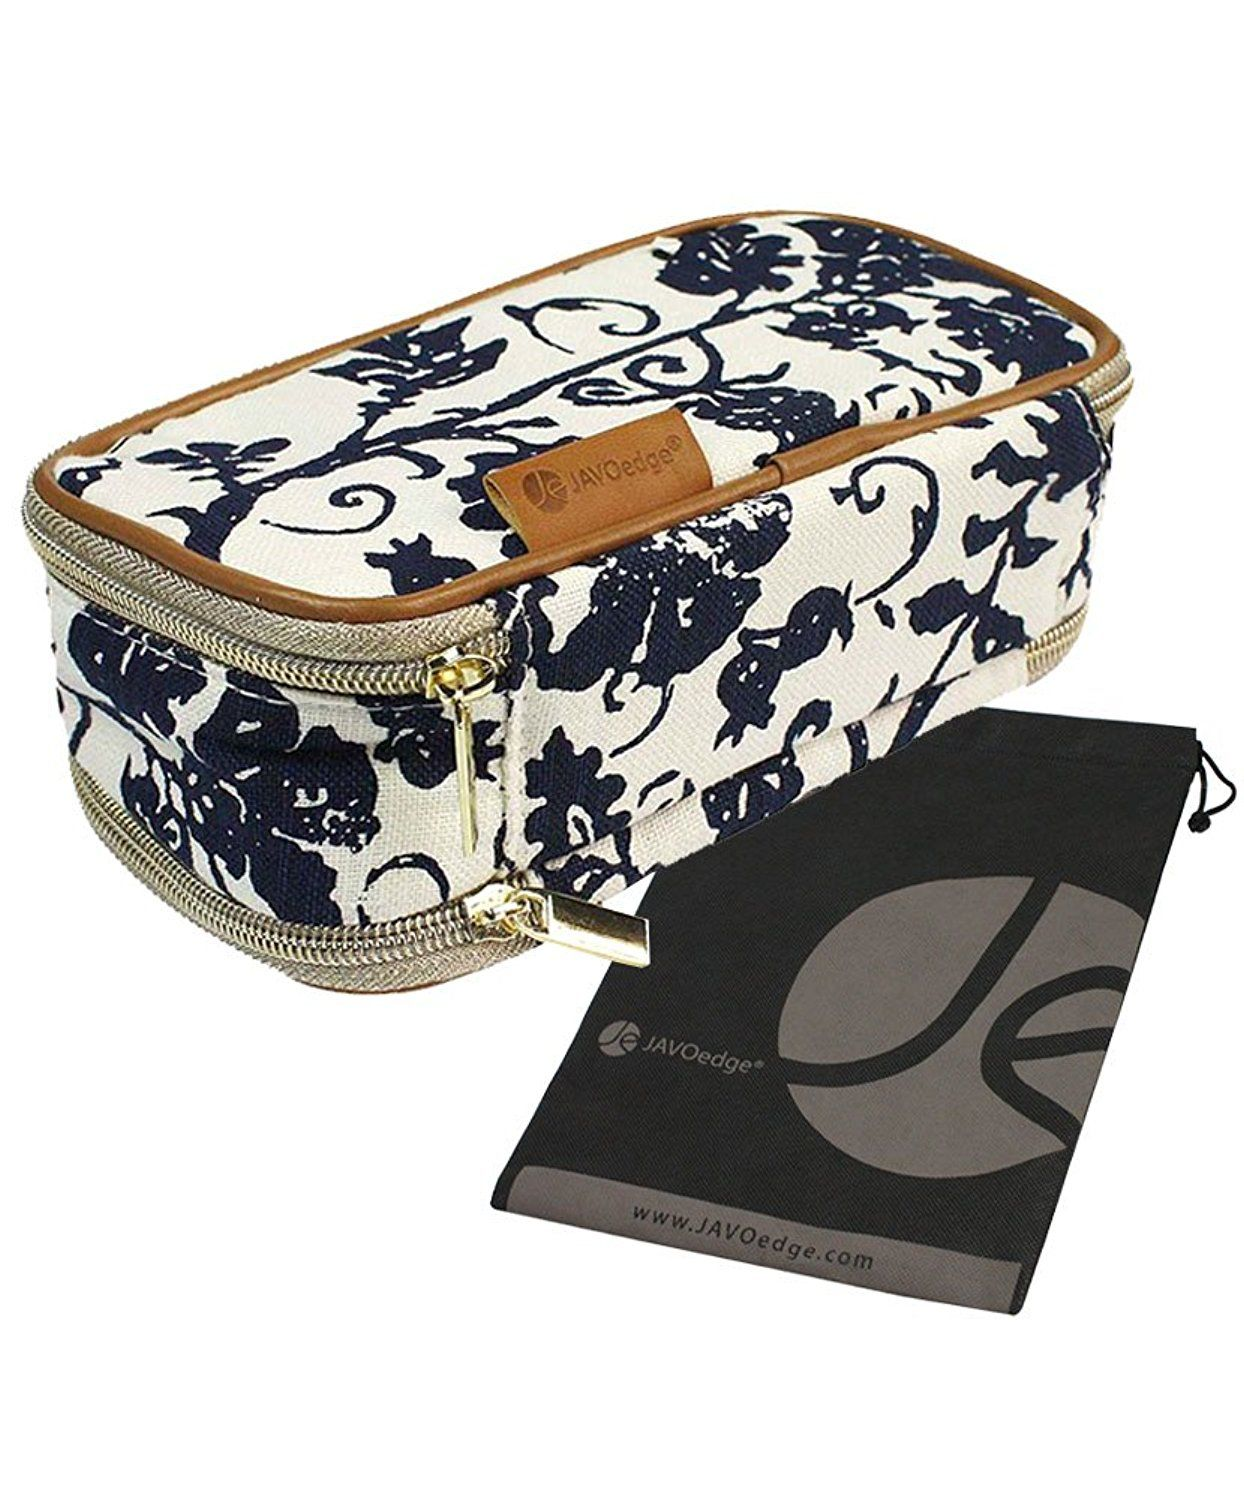 9bbb24b6439a Double-Sided Cosmetic Fabric Toiletry and Jewelry Bag Travel ...